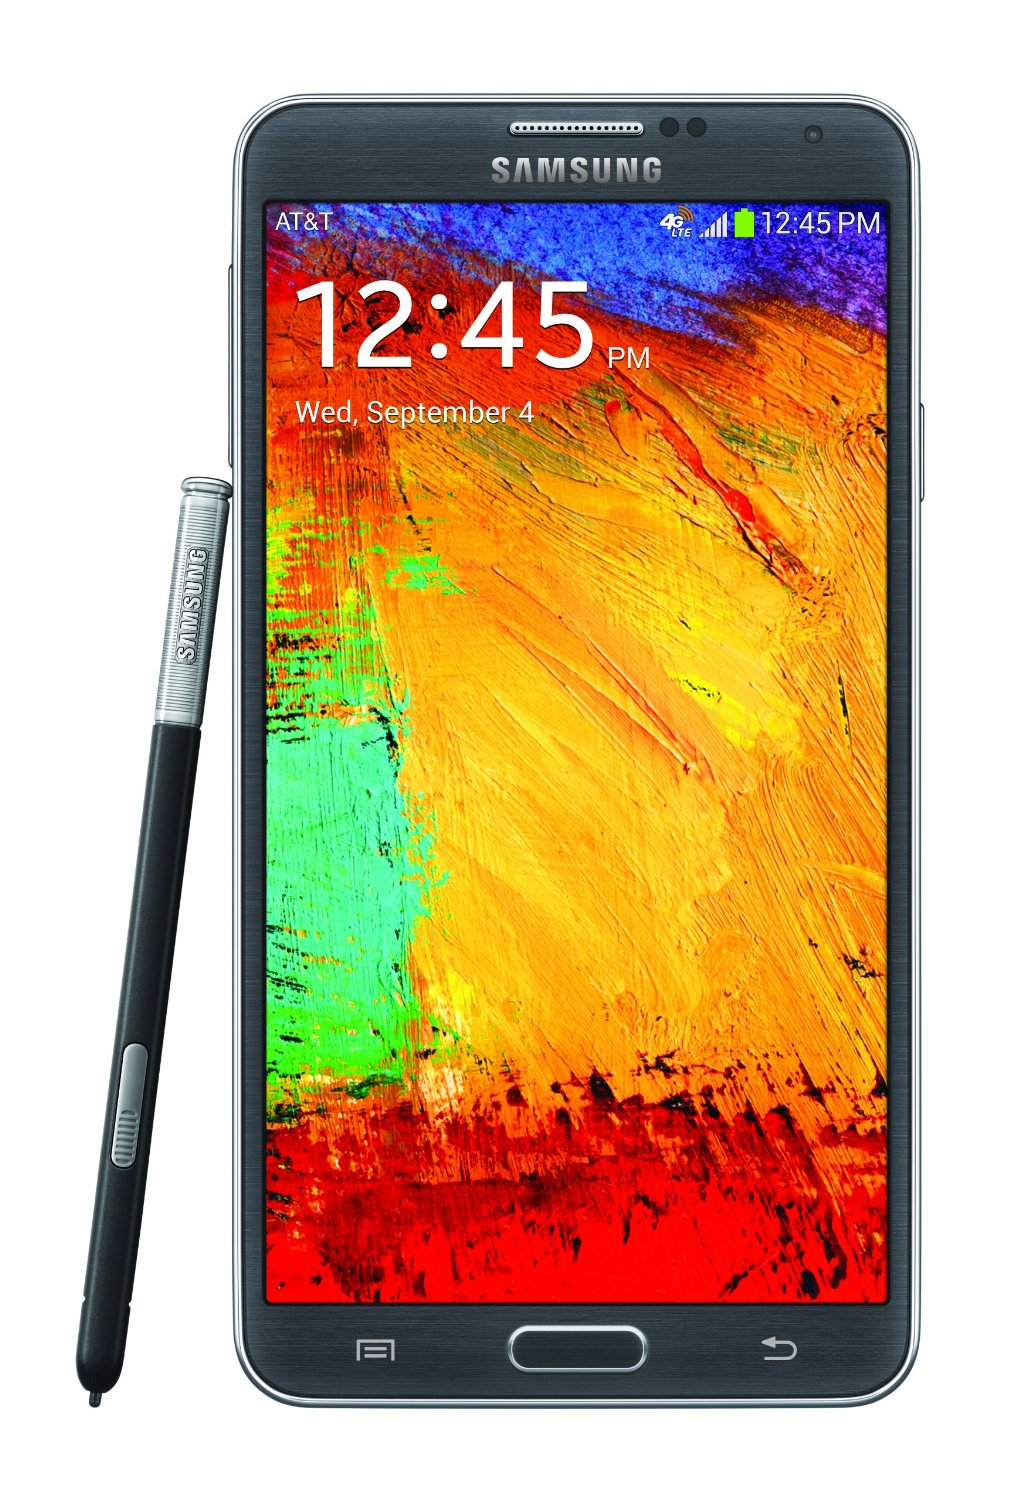 Samsung Galaxy Note 3 Smartphone 32gb Android 43 Black Infinite 4 Inch Display 41 Jellybean Dual Core 12 Ghz Processor